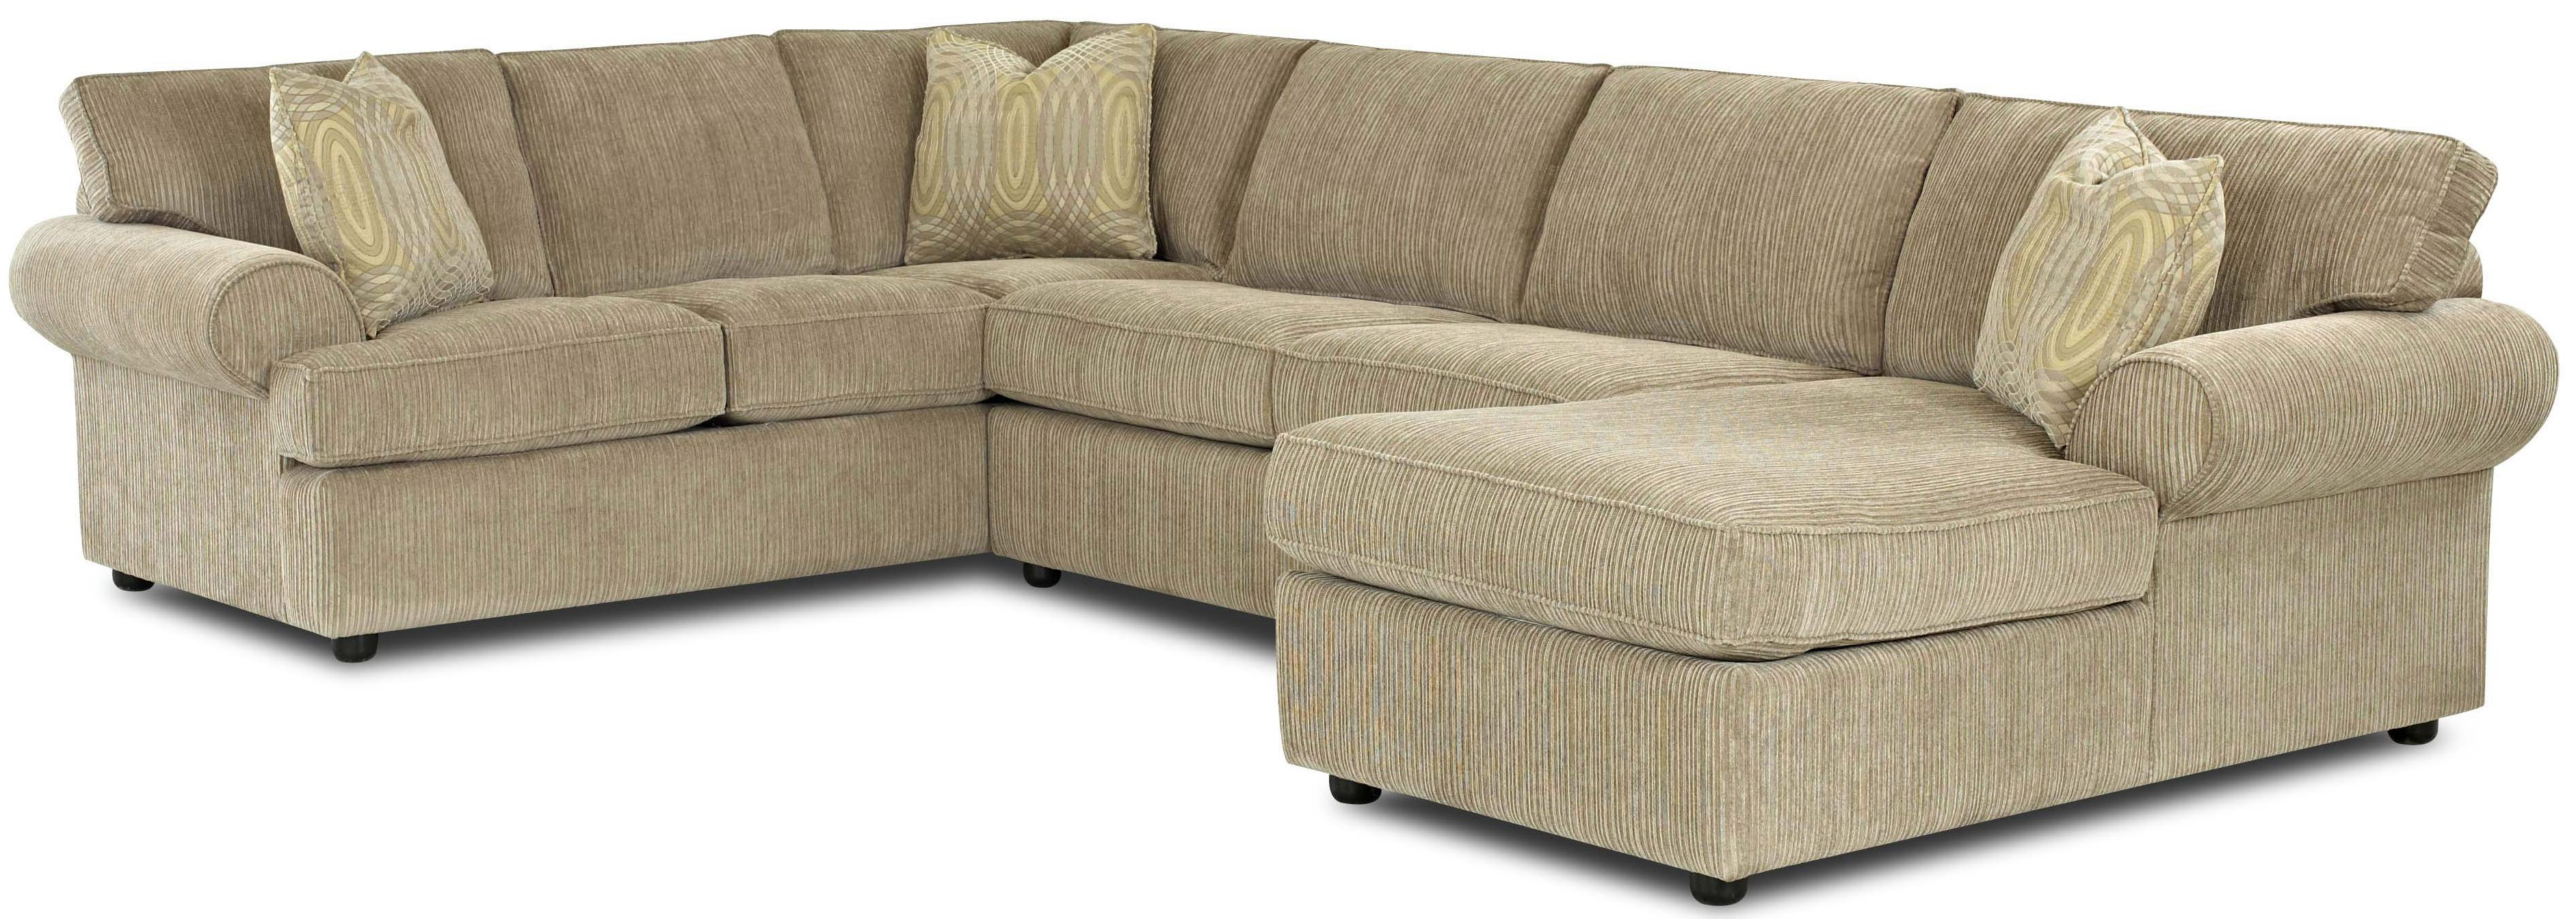 Klaussner Julington Transitional Sectional Sofa With Rolled Arms And With Regard To Most Popular Norfolk Grey 3 Piece Sectionals With Laf Chaise (Gallery 15 of 20)